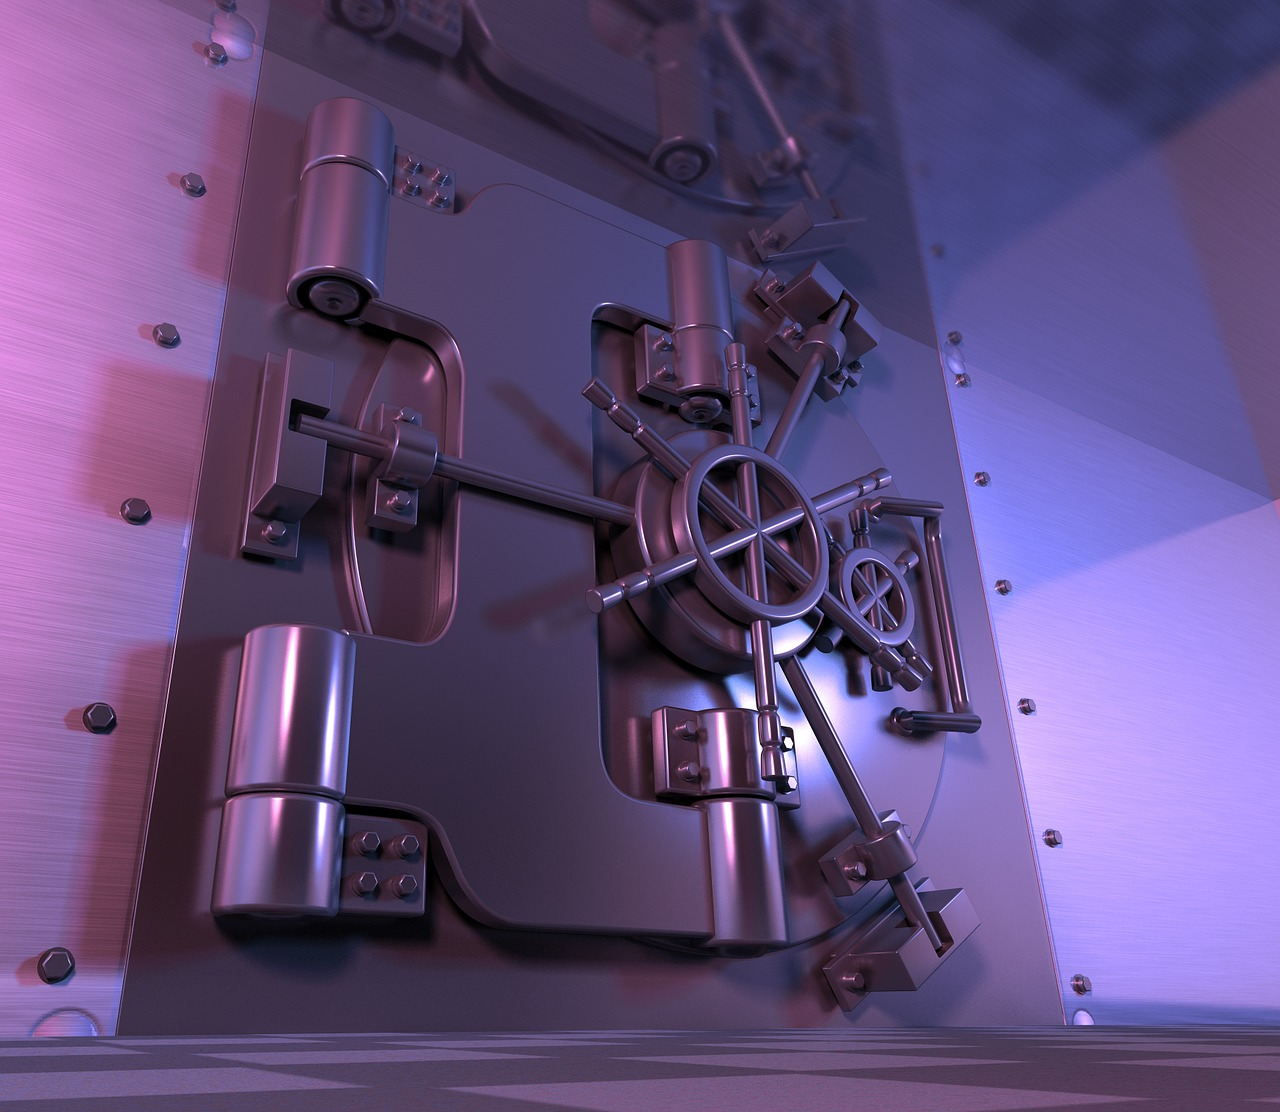 You might not be able to afford a bank vault this secure, but there are many Ways to Keep your Valuables Safe